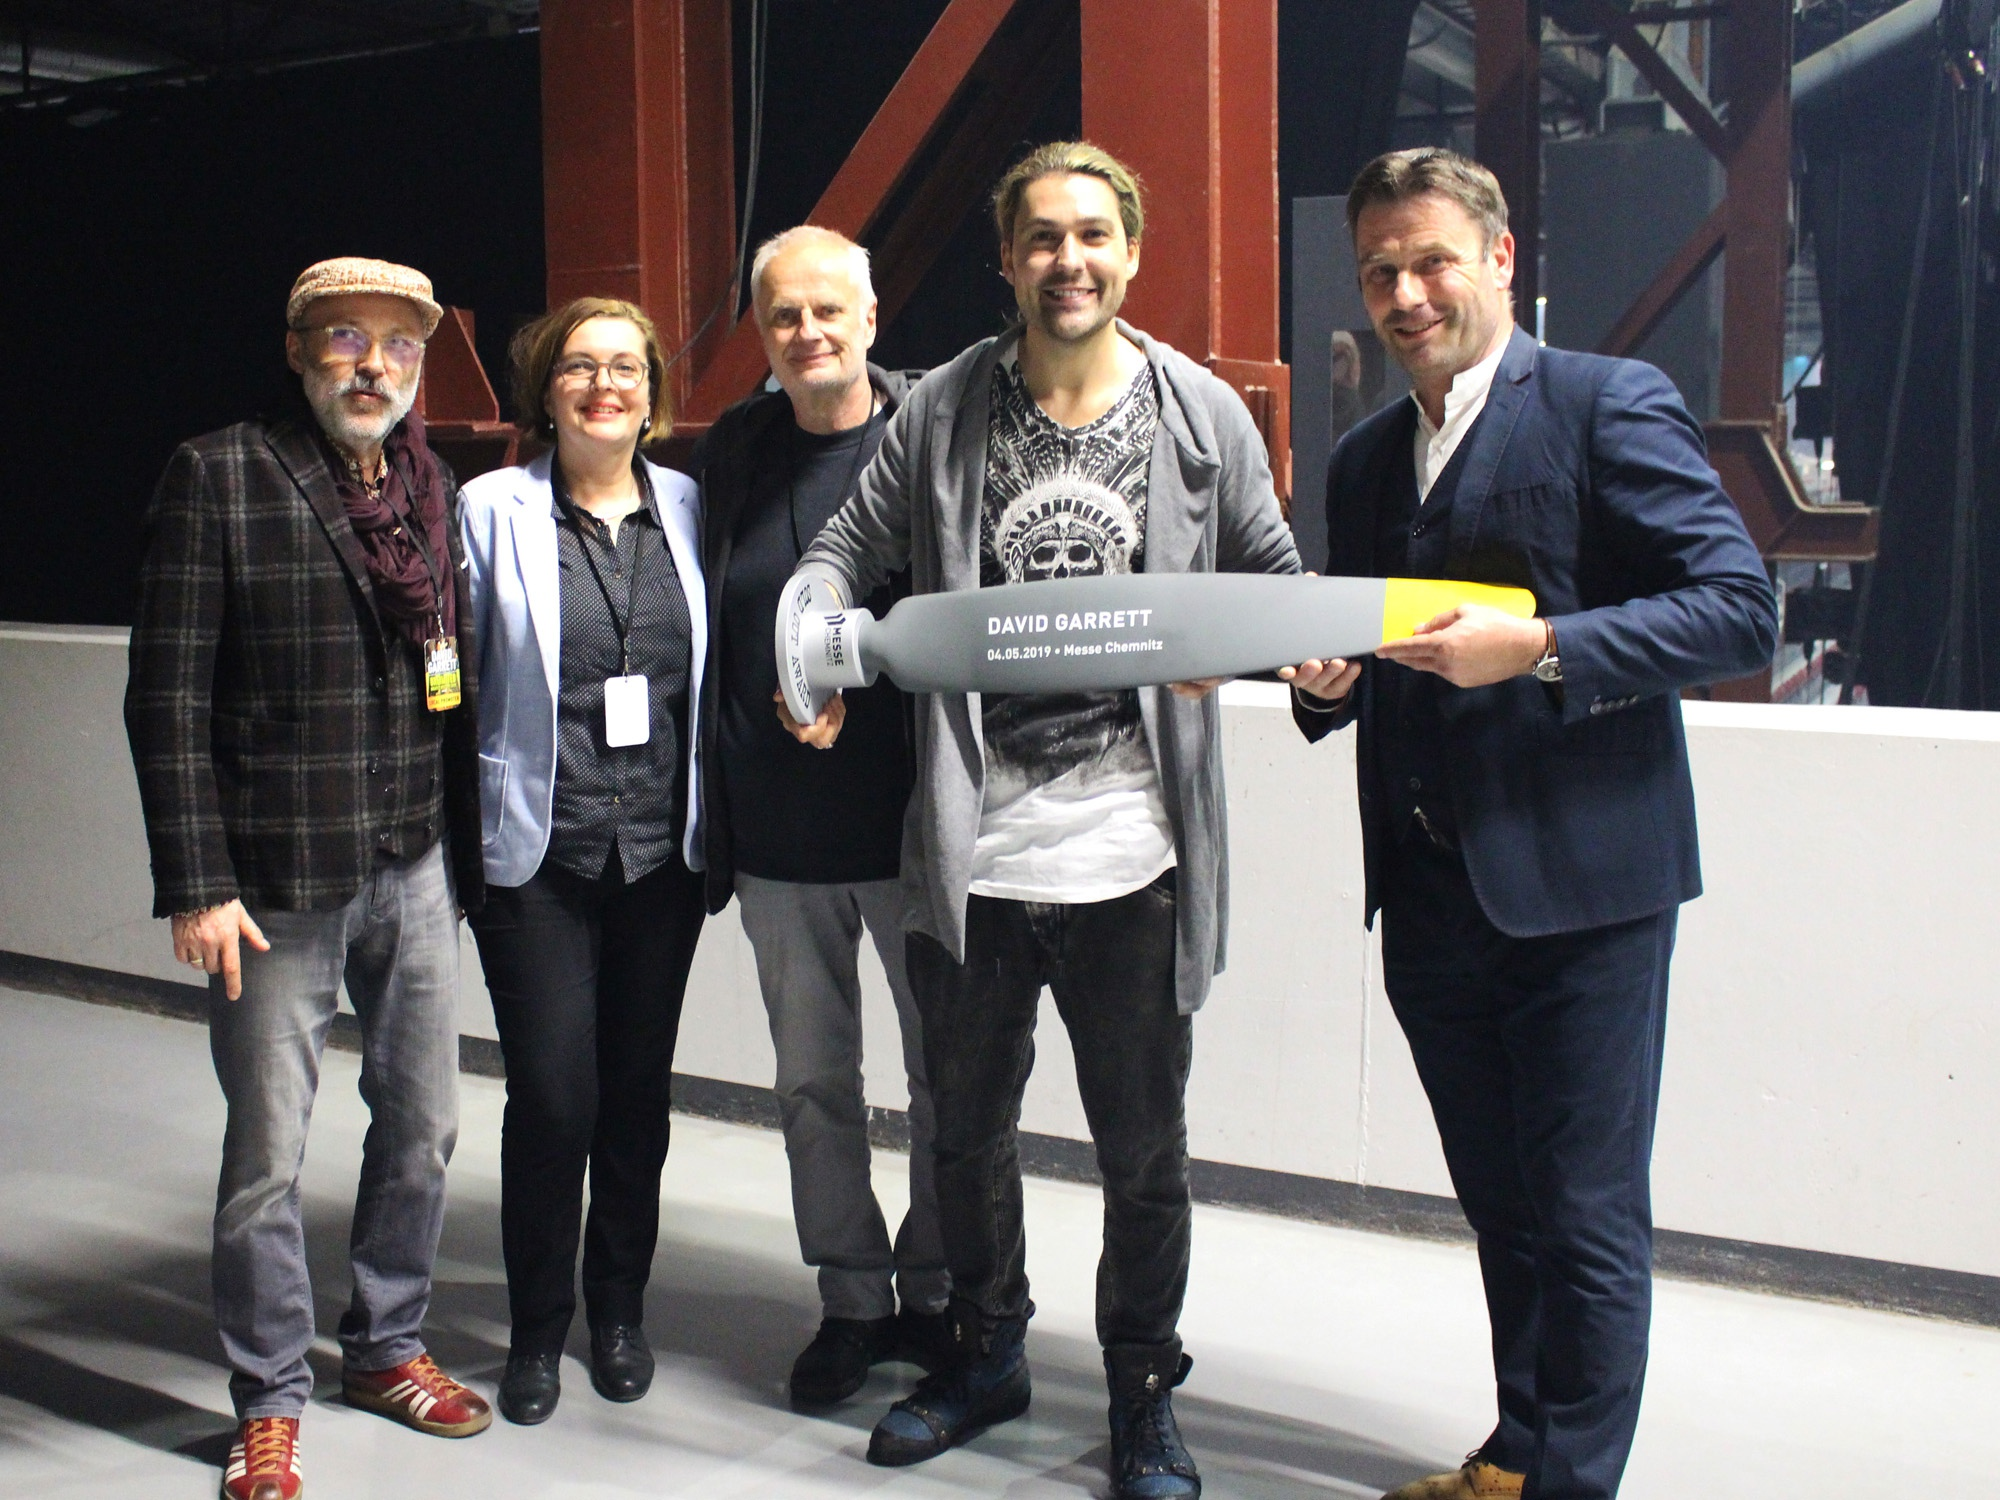 david-garrett_sold-out-award-messe-chemnitz_2019.jpg